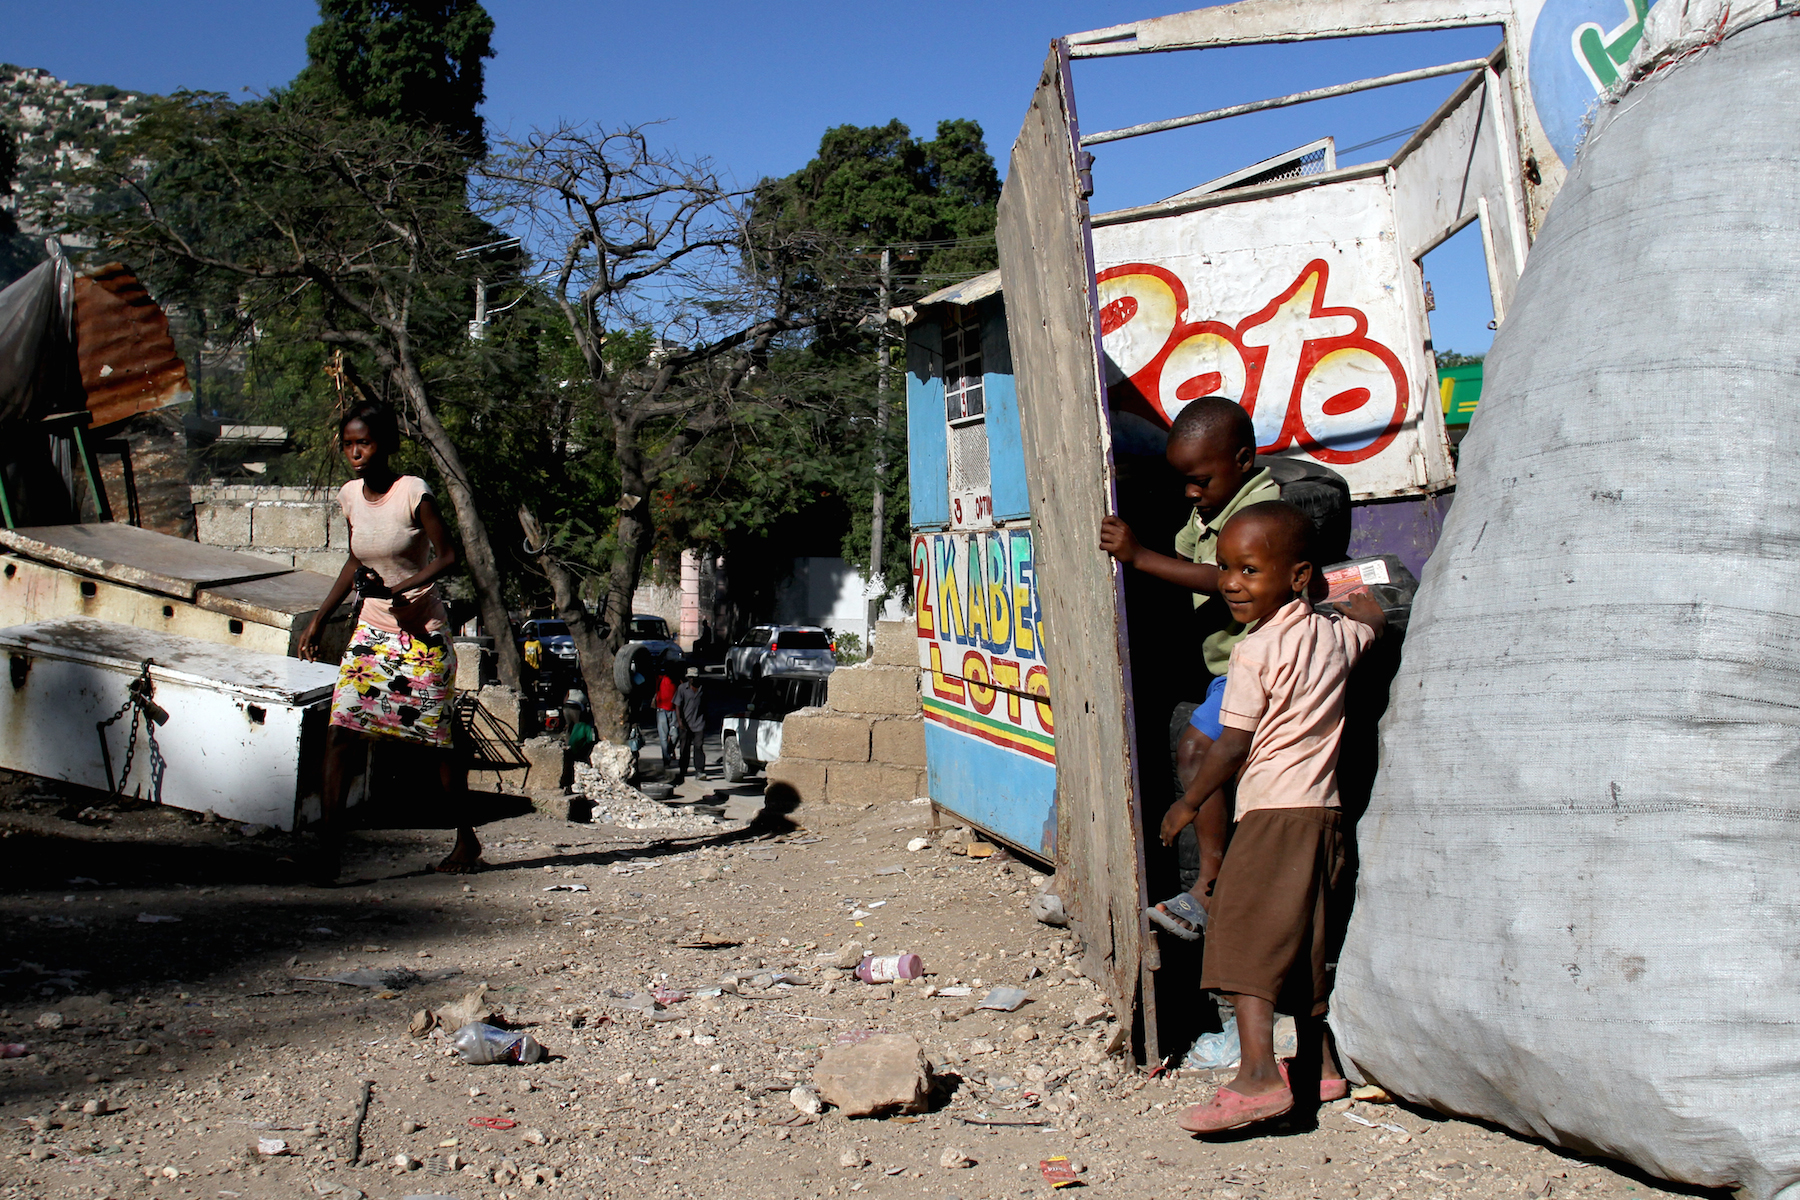 Children play in a discarded lottery booth in the Acra 2 camp, located in the Pétion-Ville commune of Port-au-Prince.